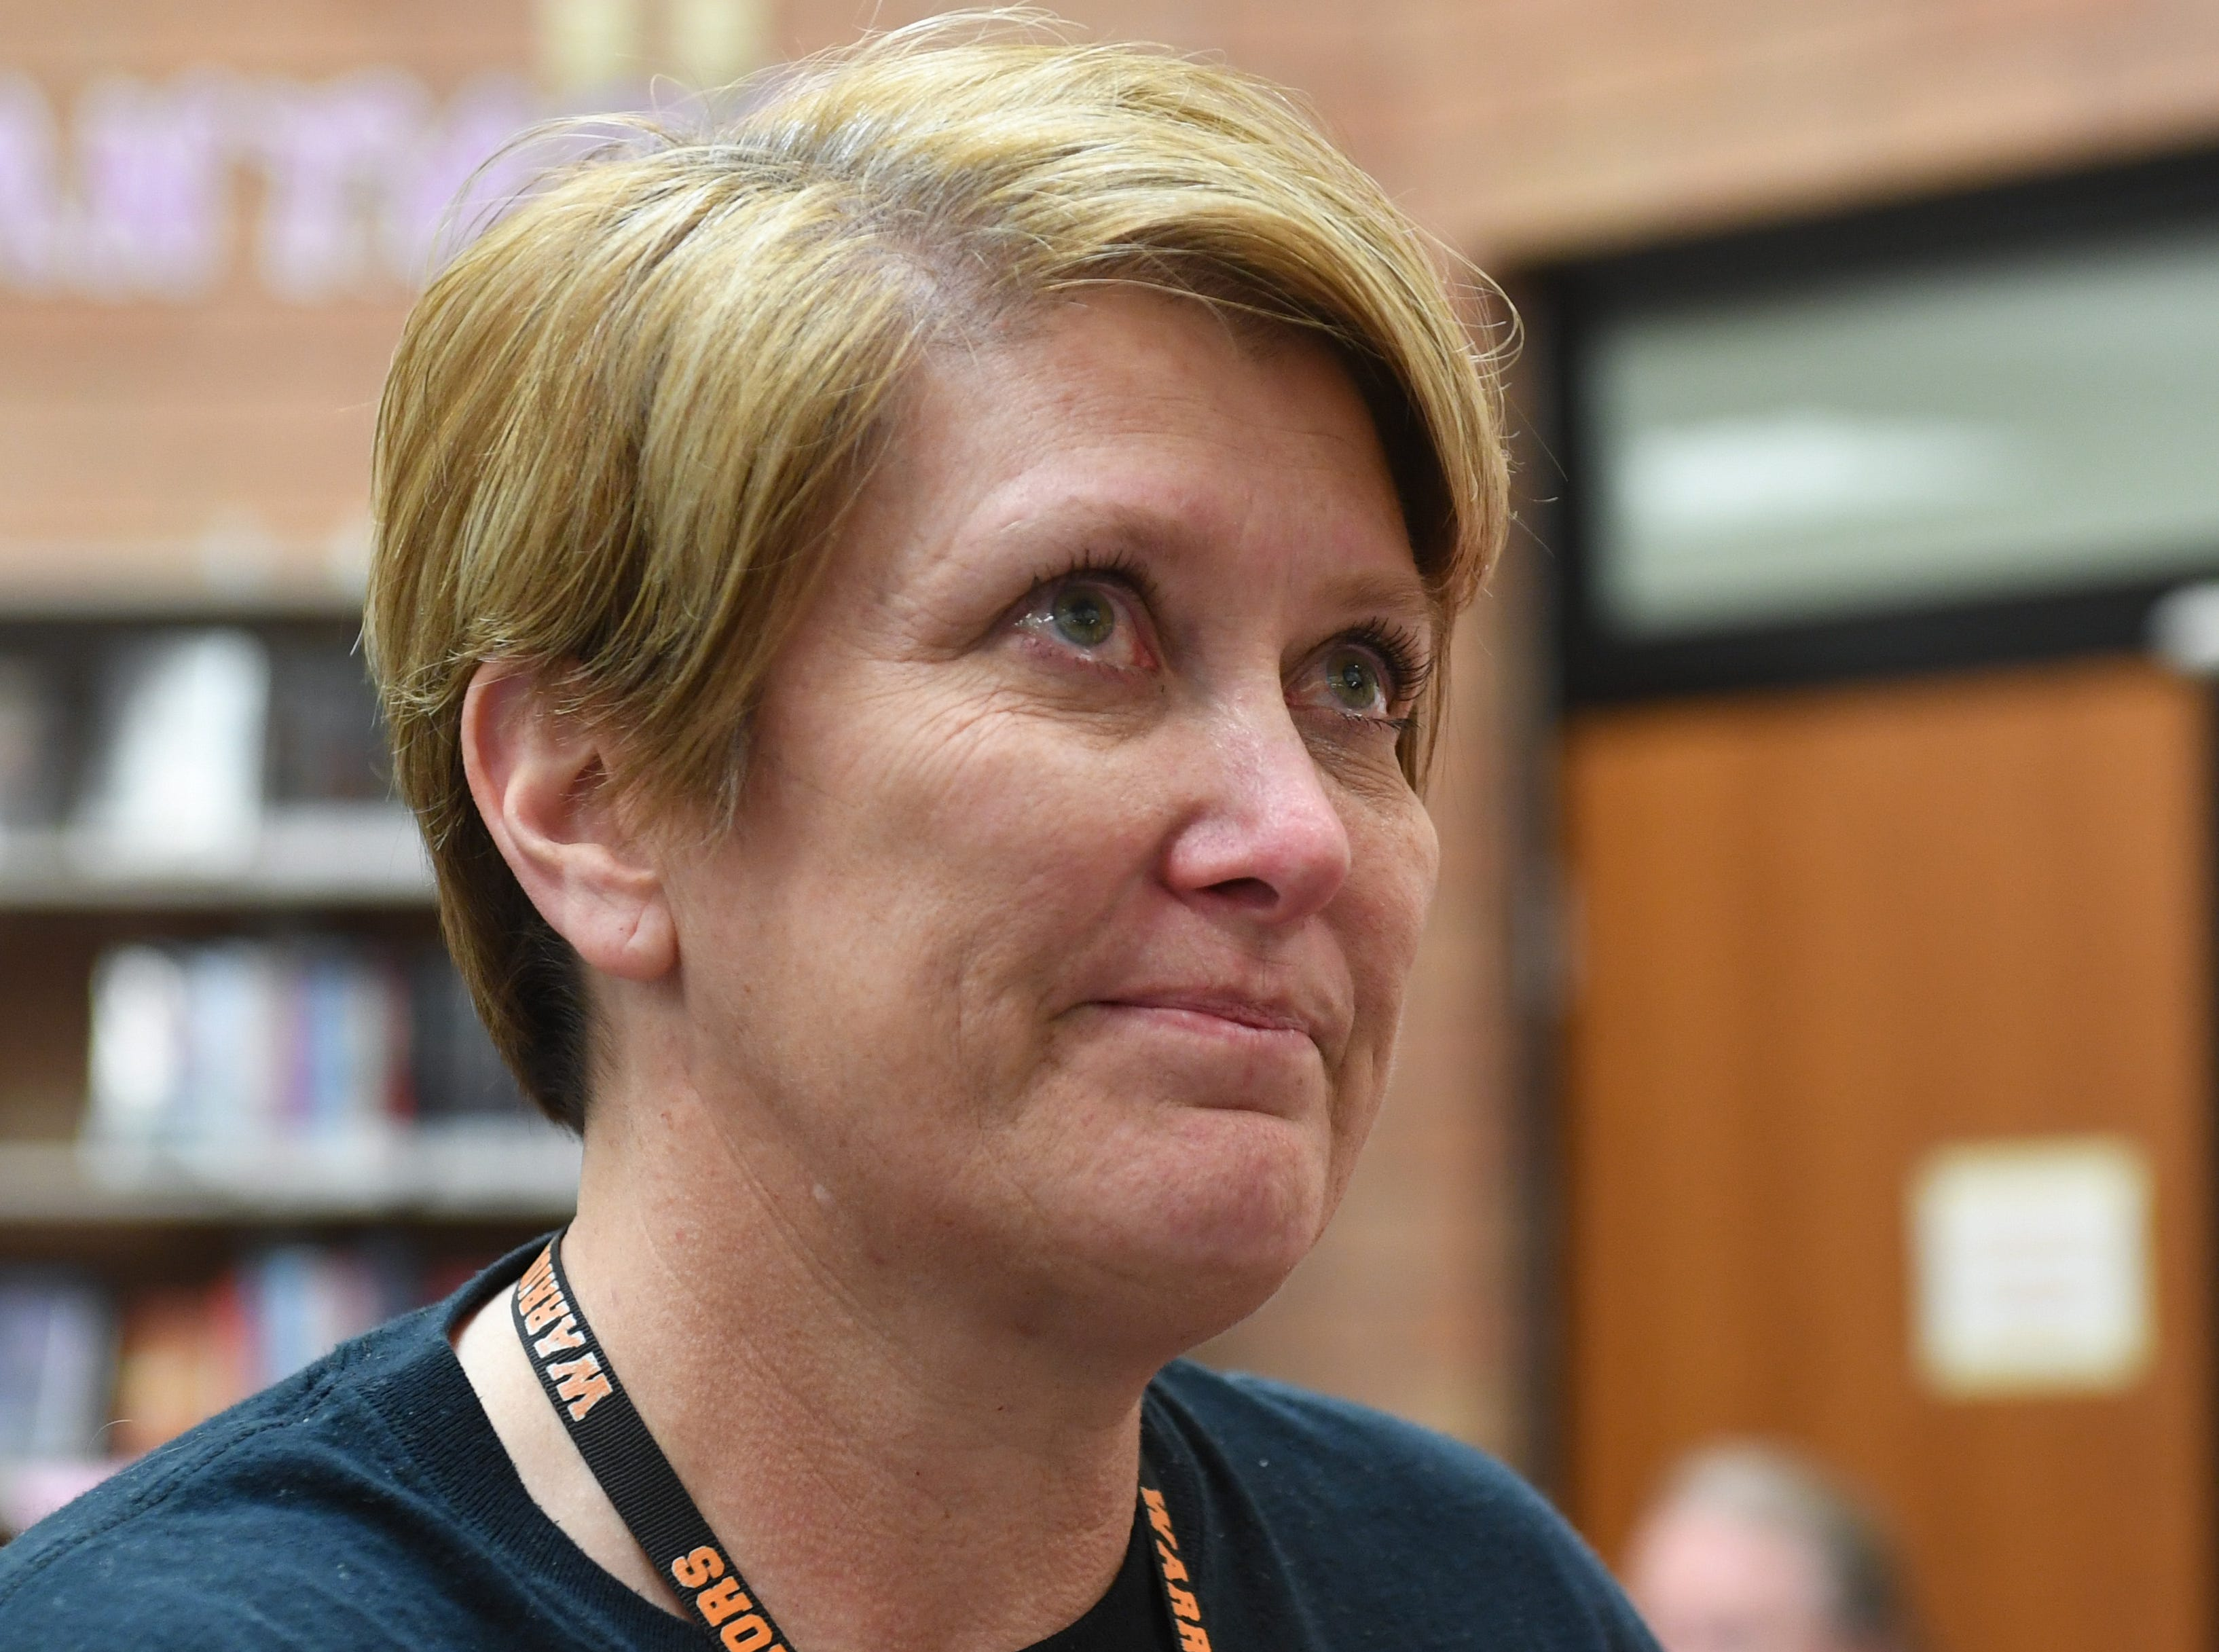 Washington High teacher Britt Samson blinks tears from her eyes as she expresses her gratitude after receiving an Innovation in Education grant from the Sioux Falls Public Schools Education Foundation on Wednesday, May 8, 2019 in the Washington High School library. The grant will be put toward virtual reality equipment to allow her students to travel the world regardless of income.